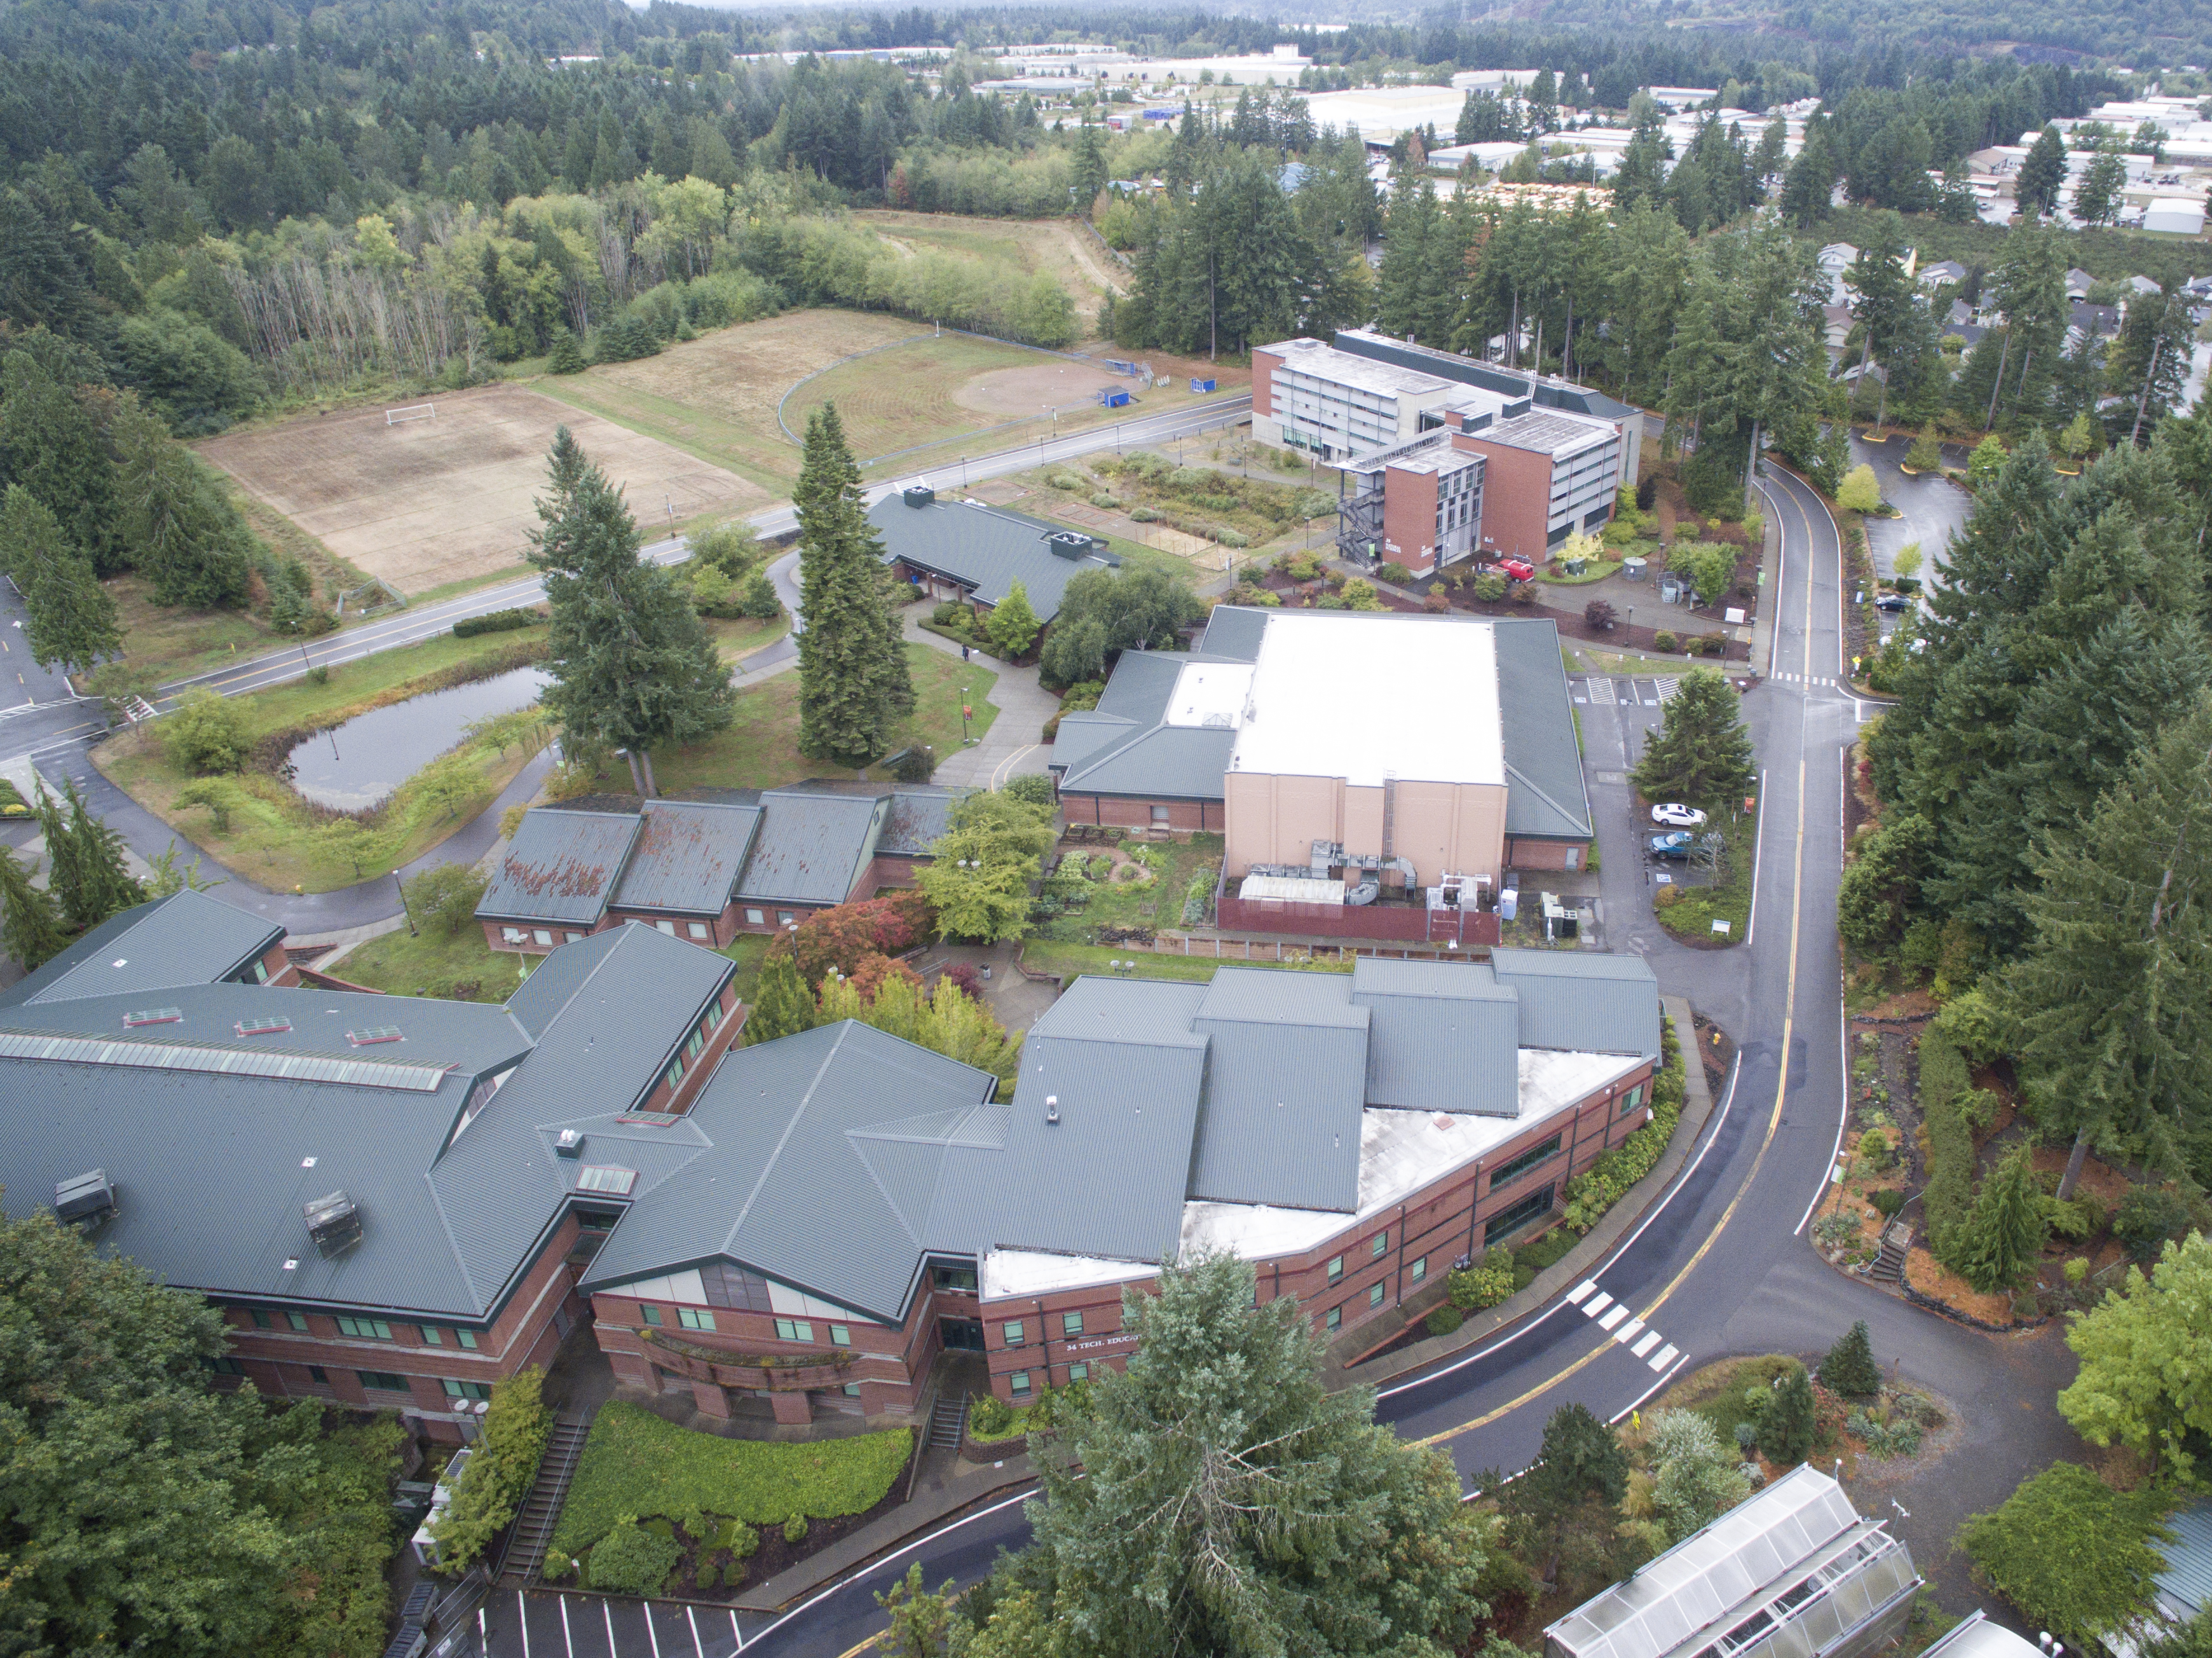 An aerial view of SPSCC's Olympia campus